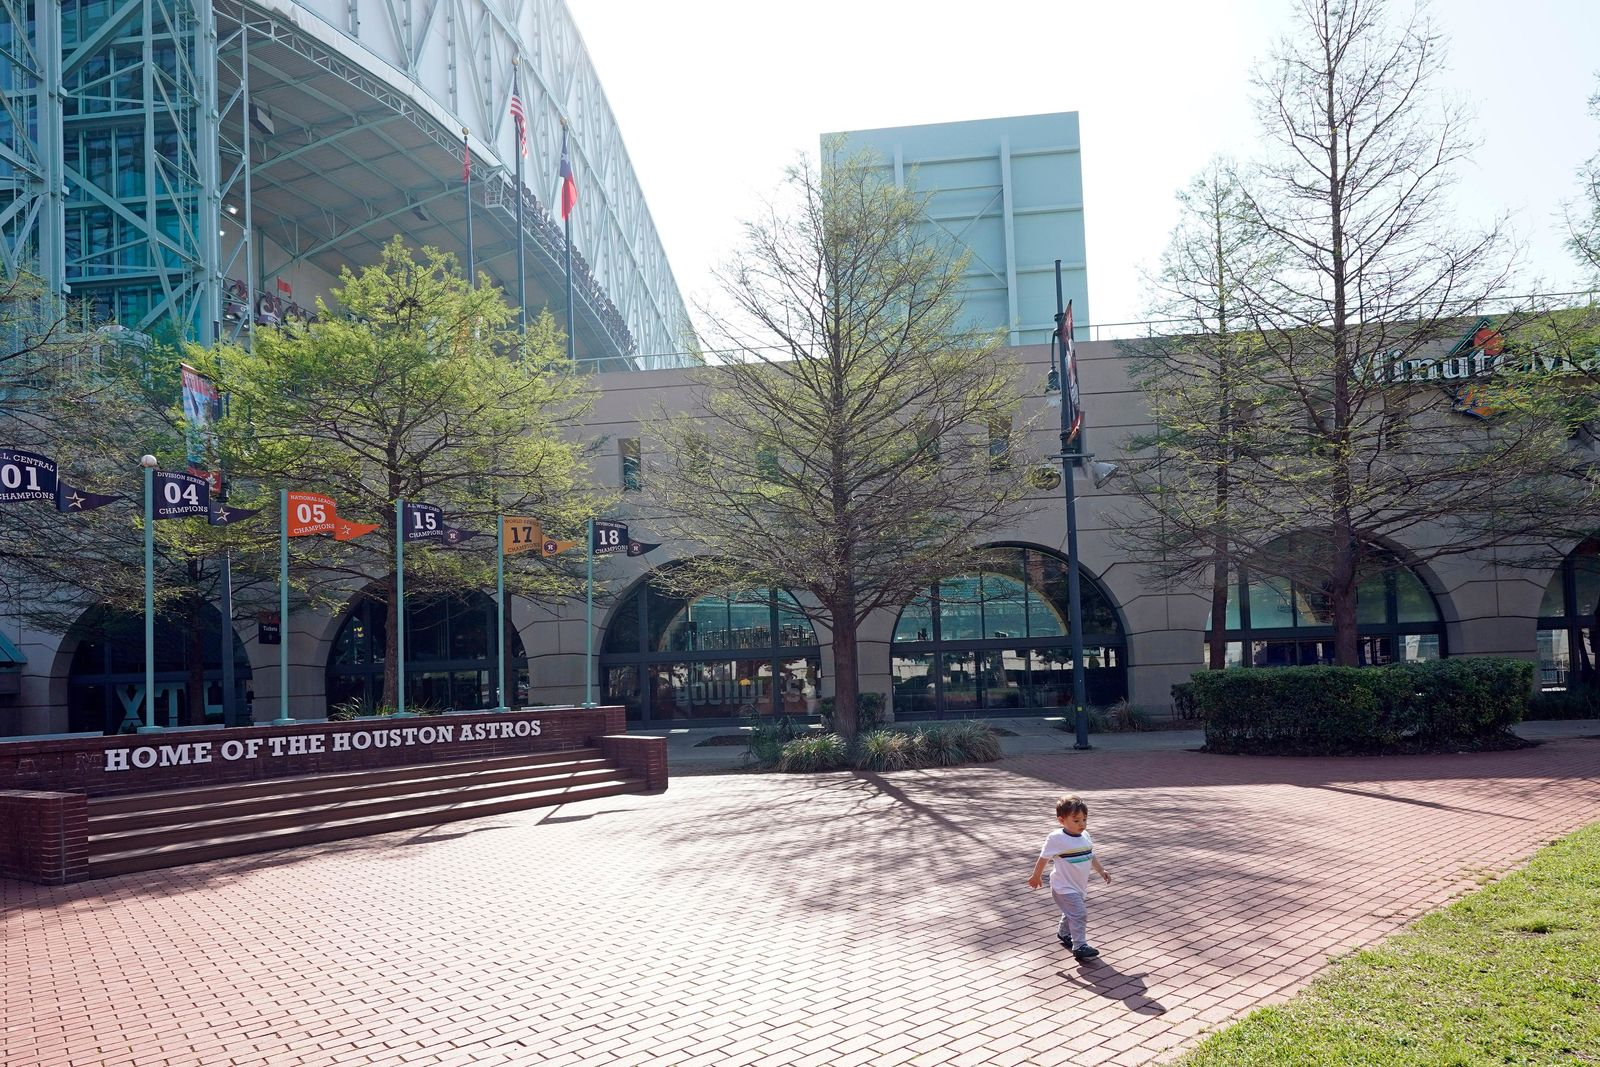 Lucas Estebanez, 18-months-old, runs outside Minute Maid Park Wednesday, March 25, 2020, in Houston. The Houston Astros would have hosted the Los Angeles Angels in their season-opening baseball game Thursday. The start of the regular season is indefinitely on hold because of the coronavirus pandemic. (AP Photo/David J. Phillip)